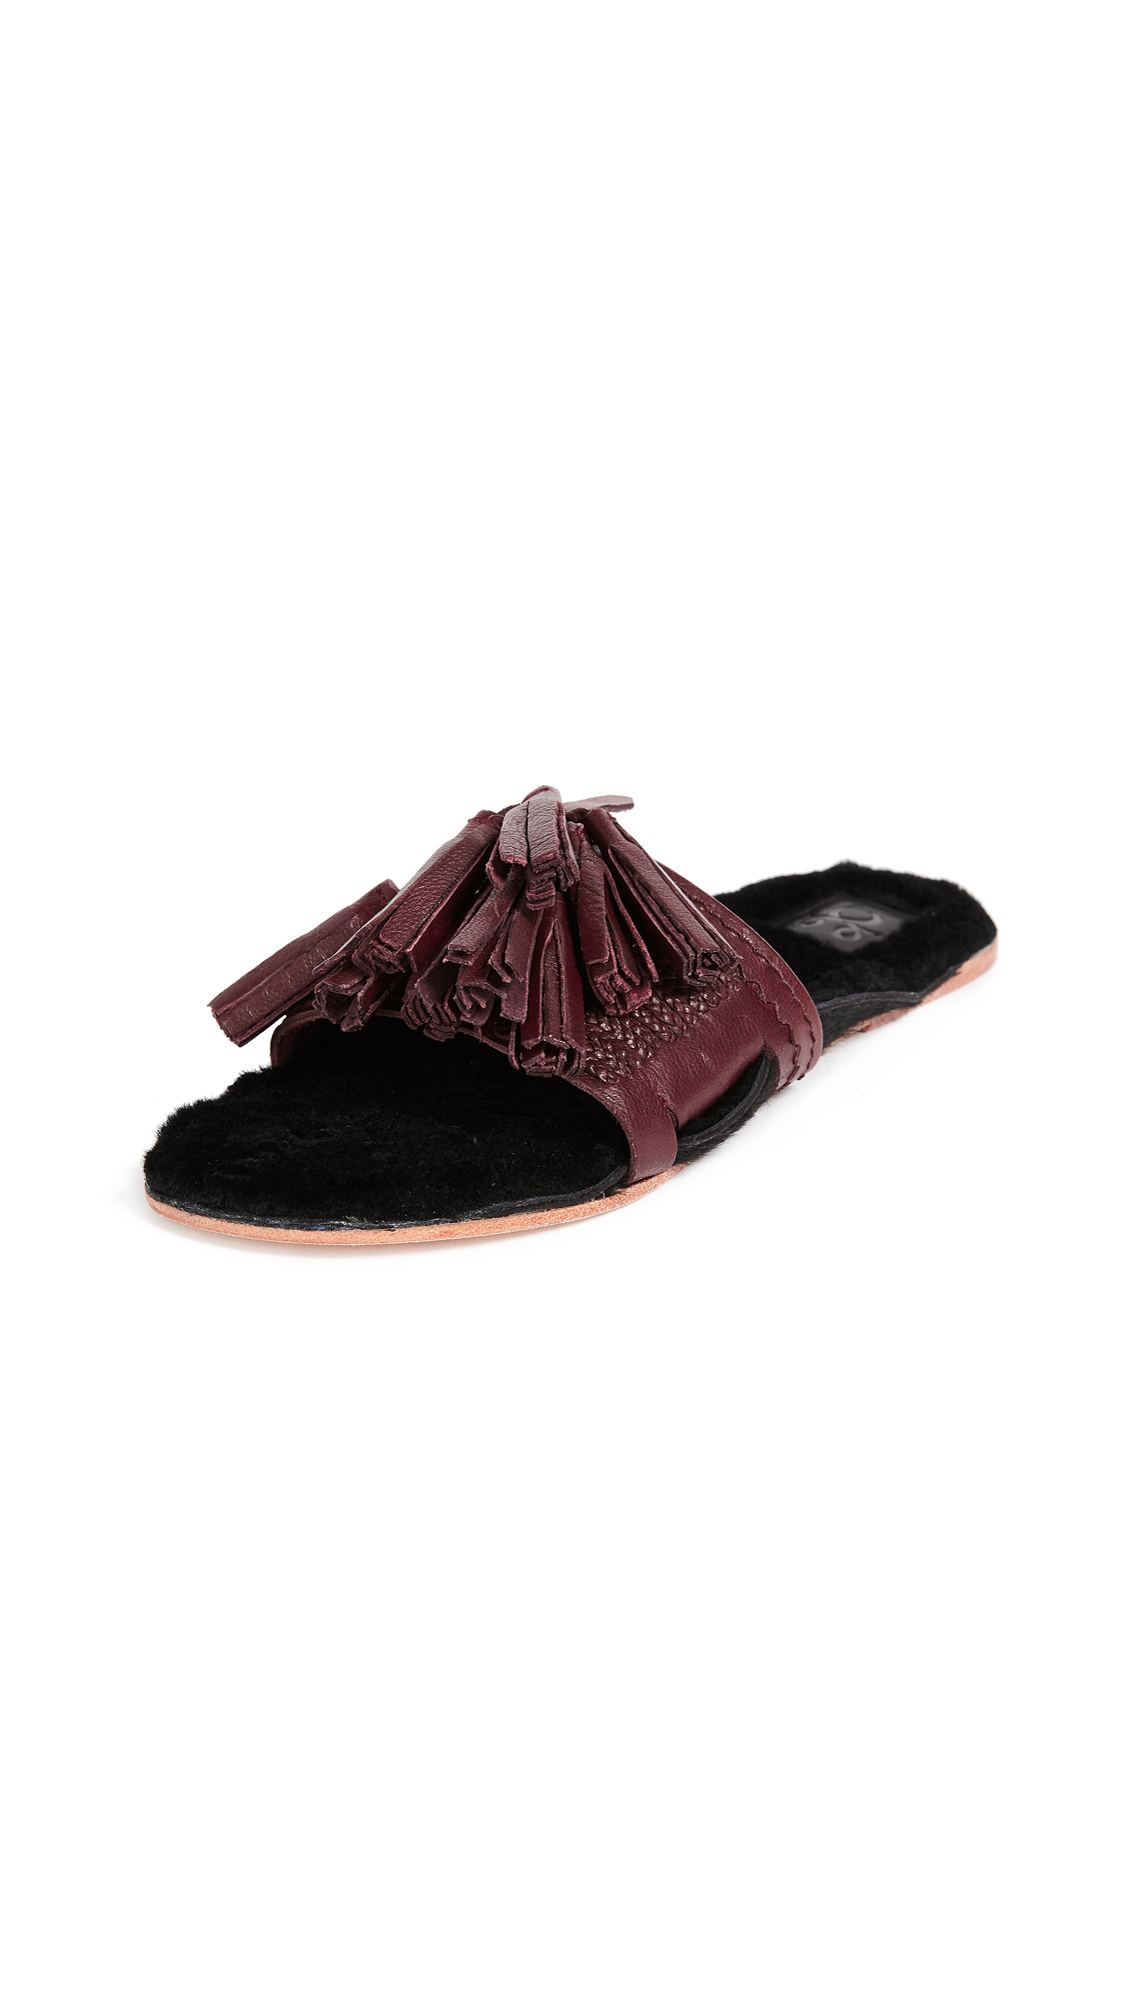 Figue Shearling Noona Slides - Dark Raspberry